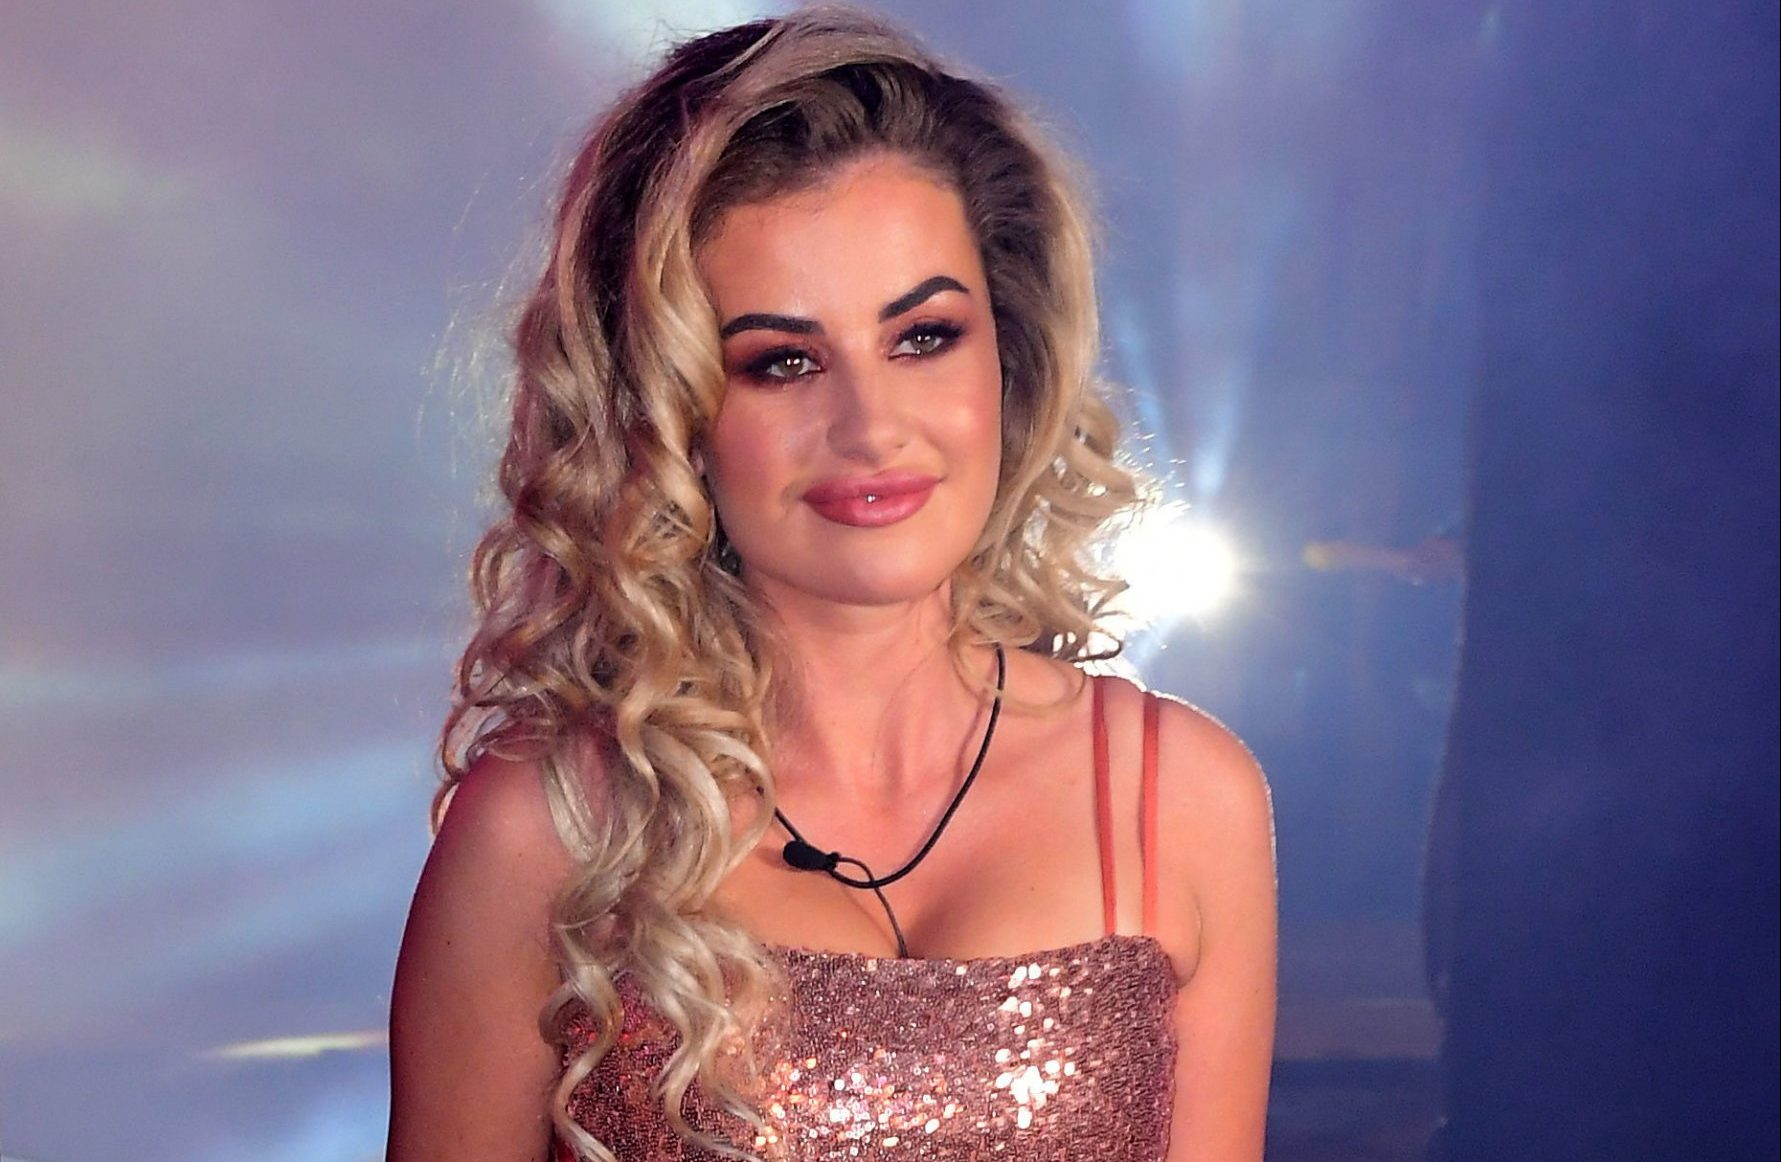 The story of Chloe Ayling's kidnapping ordeal as she enters Celebrity Big Brother 2018